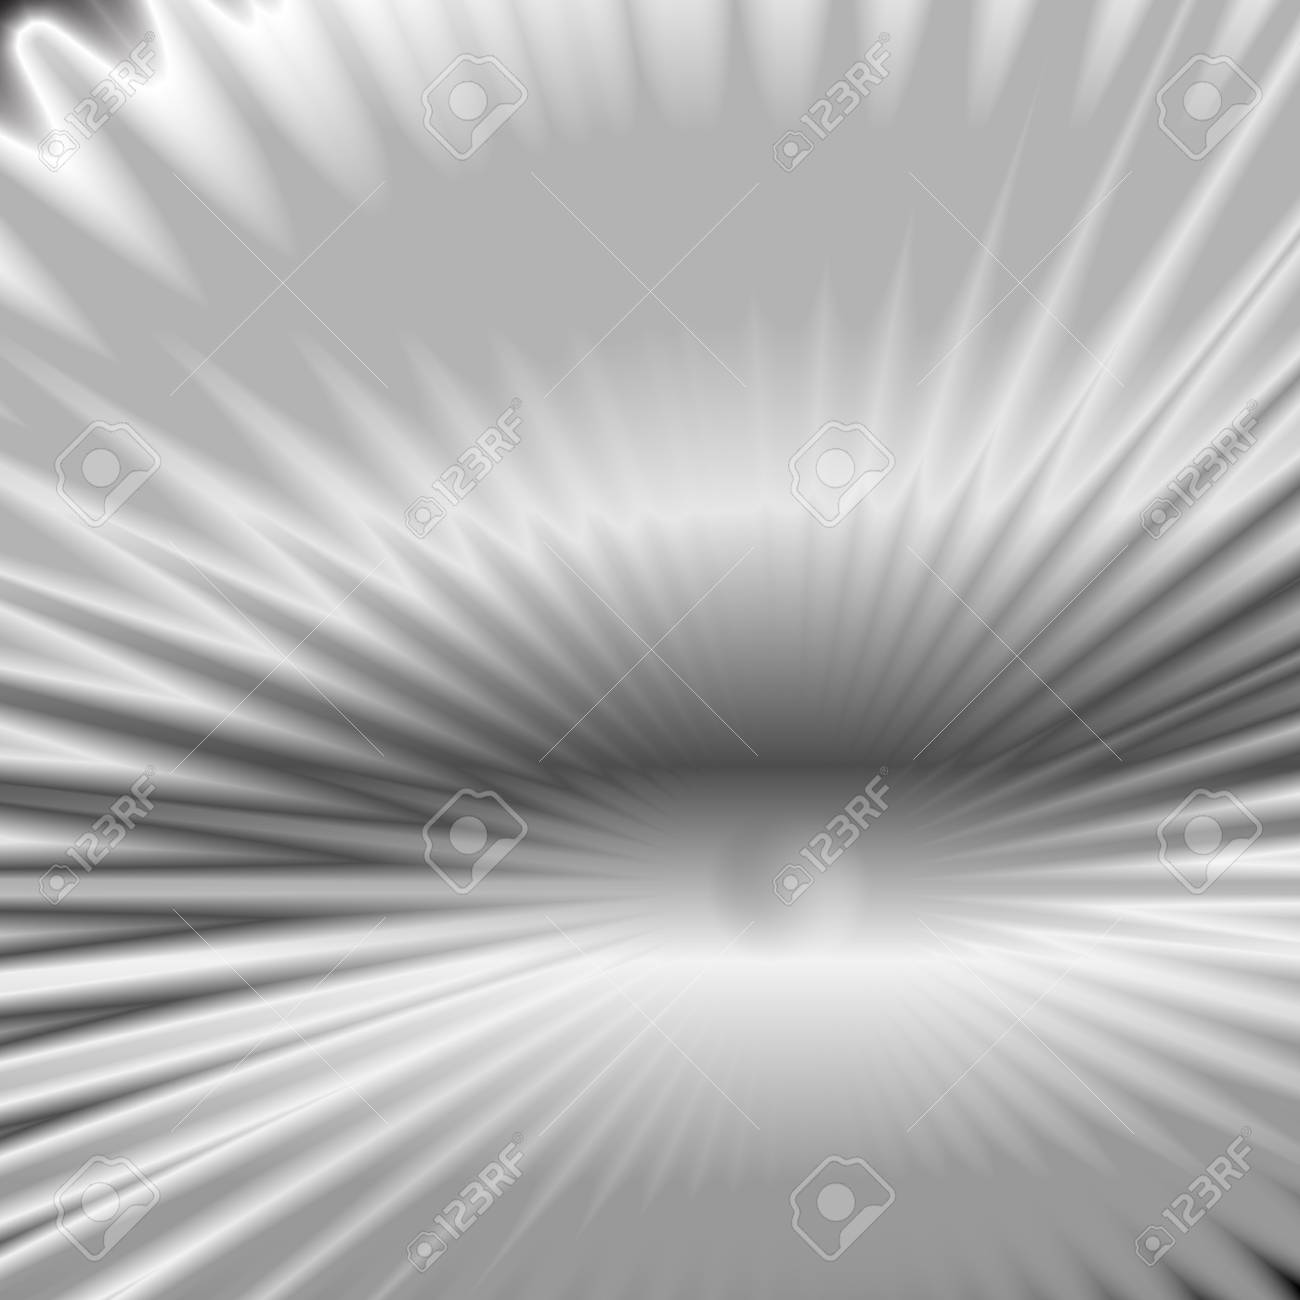 the Shiny Aluminum or metal background Stock Photo - 22123730